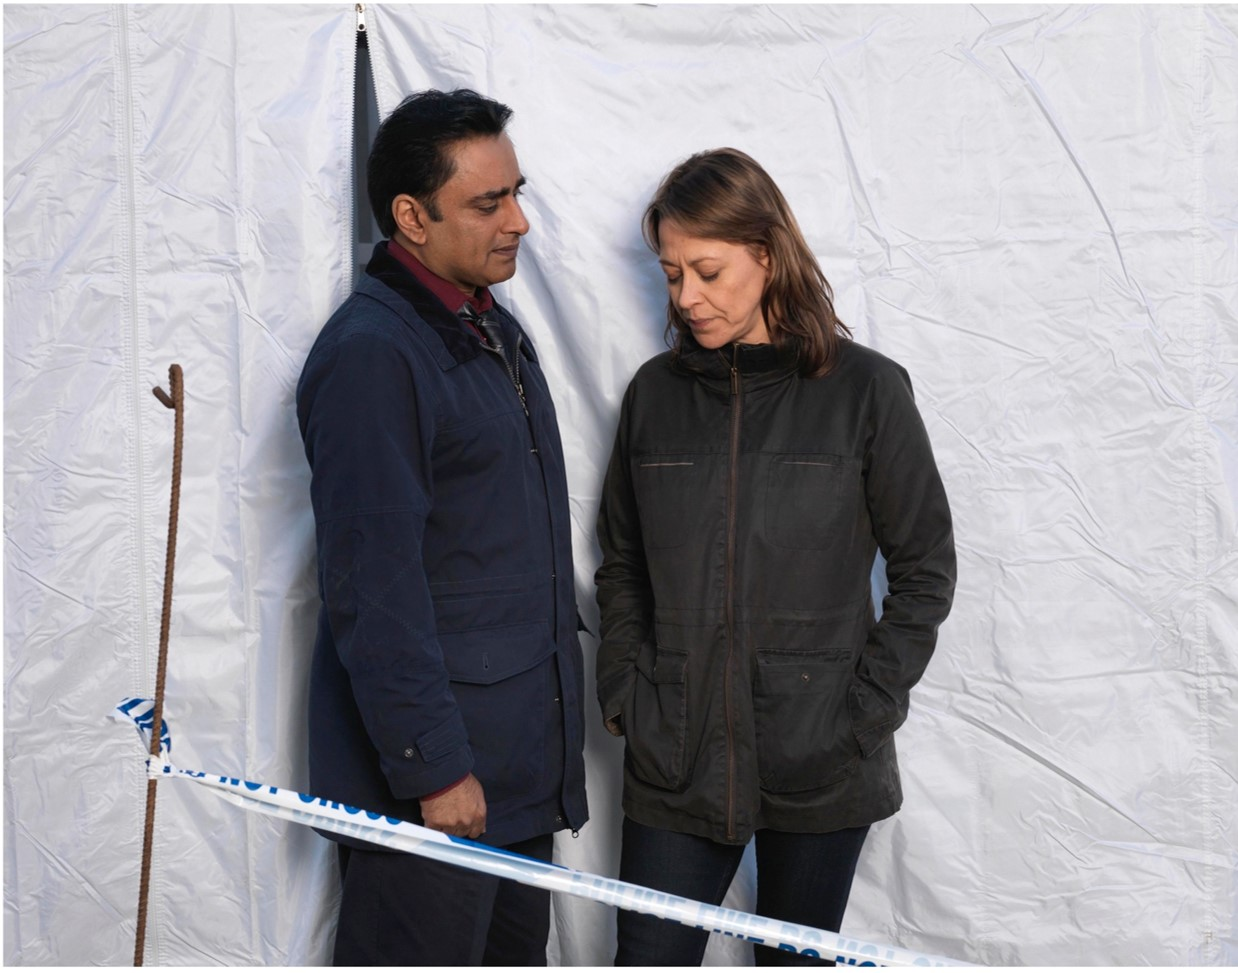 Nicola Walker and Sanjeev Bhaskar